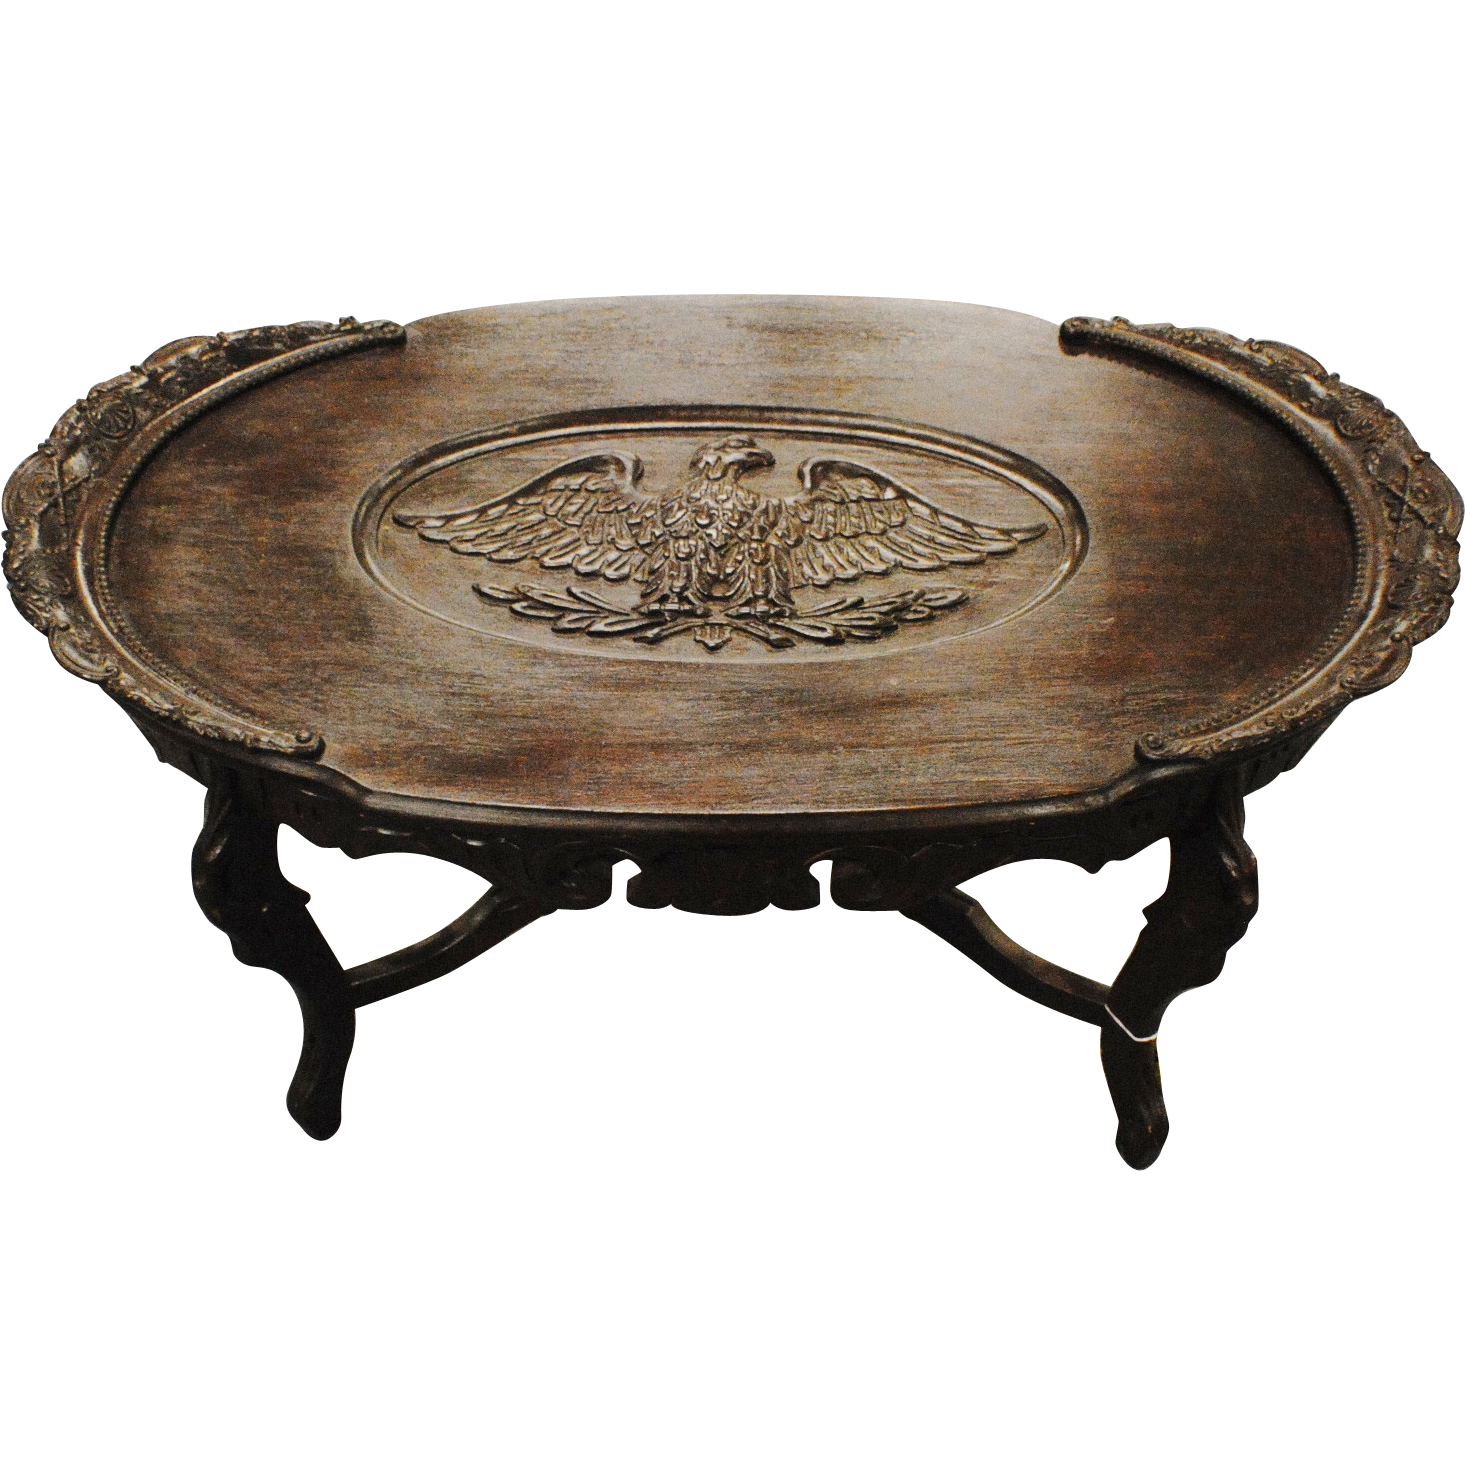 Coffee Table With Carved Eagle And Civil War Scene Sold On Ruby Lane